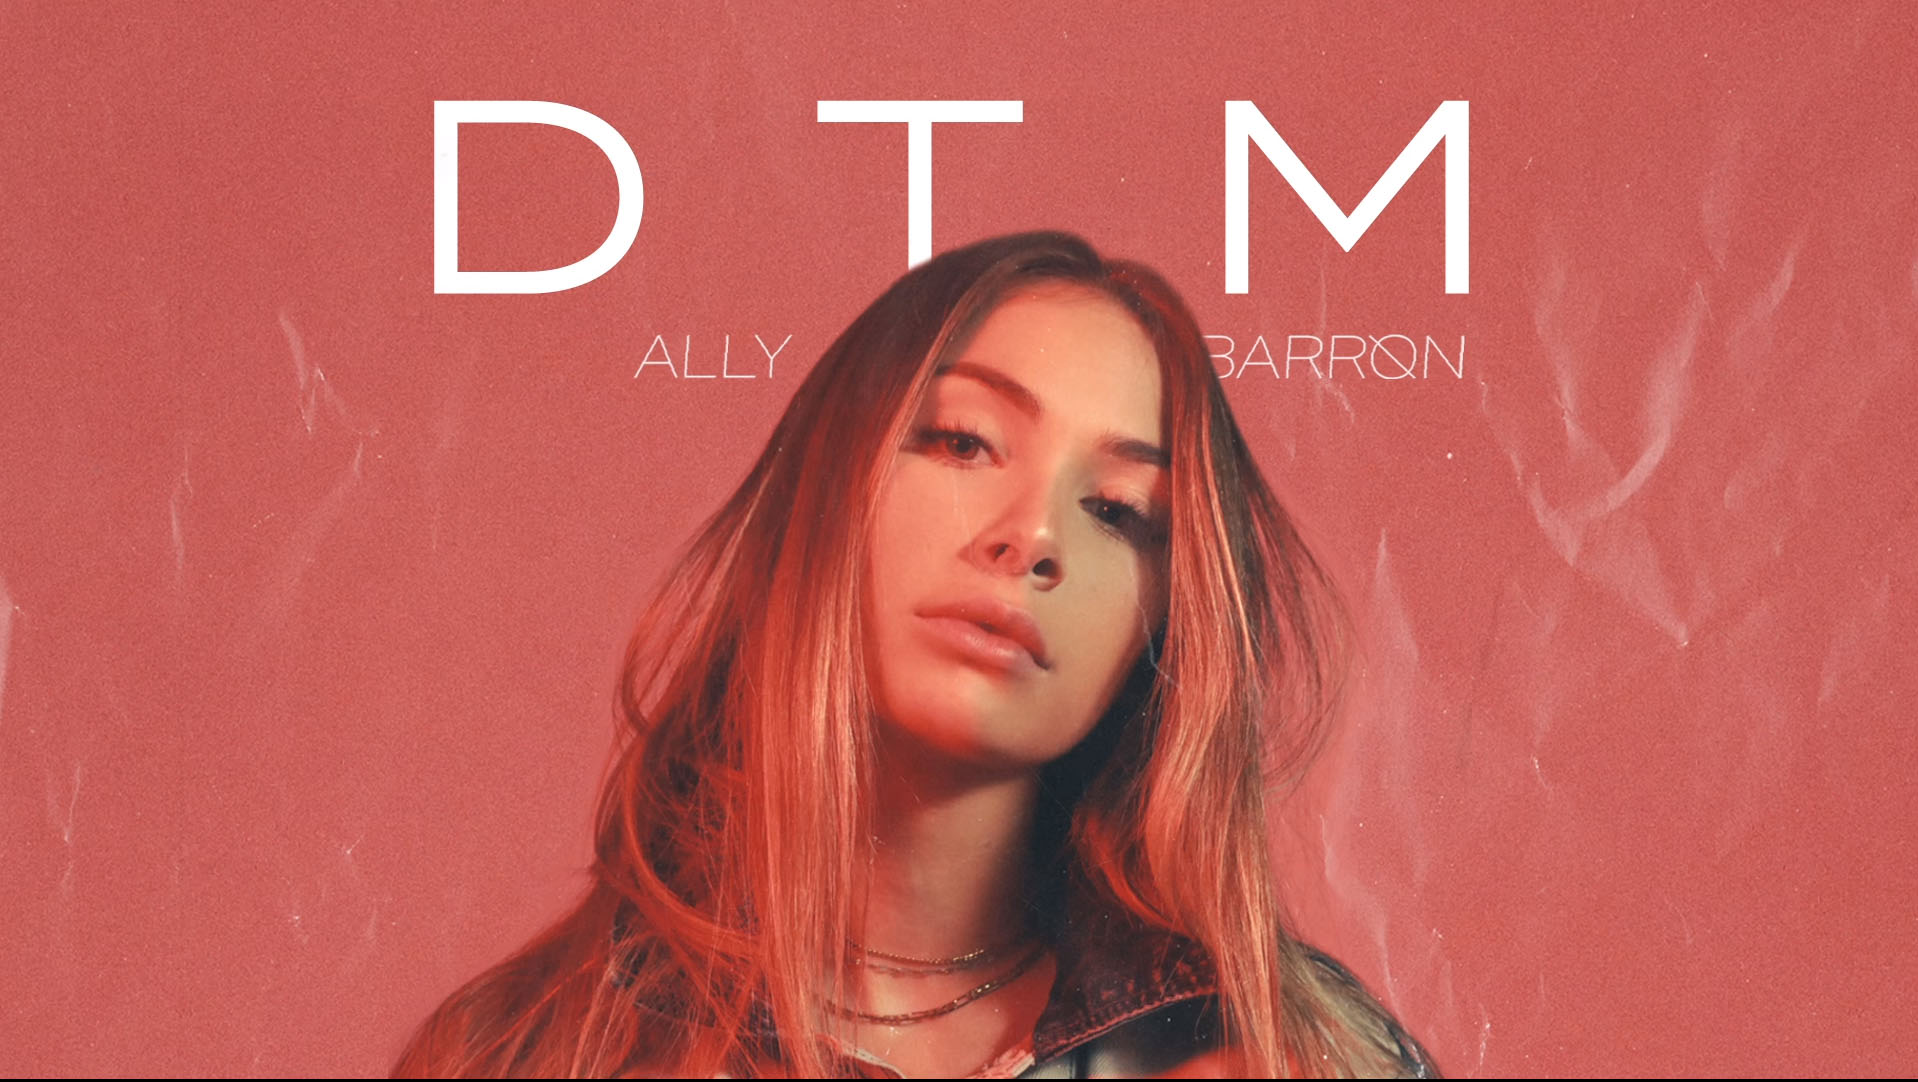 """Ally Barron Releases Her Third Single """"D T M"""""""